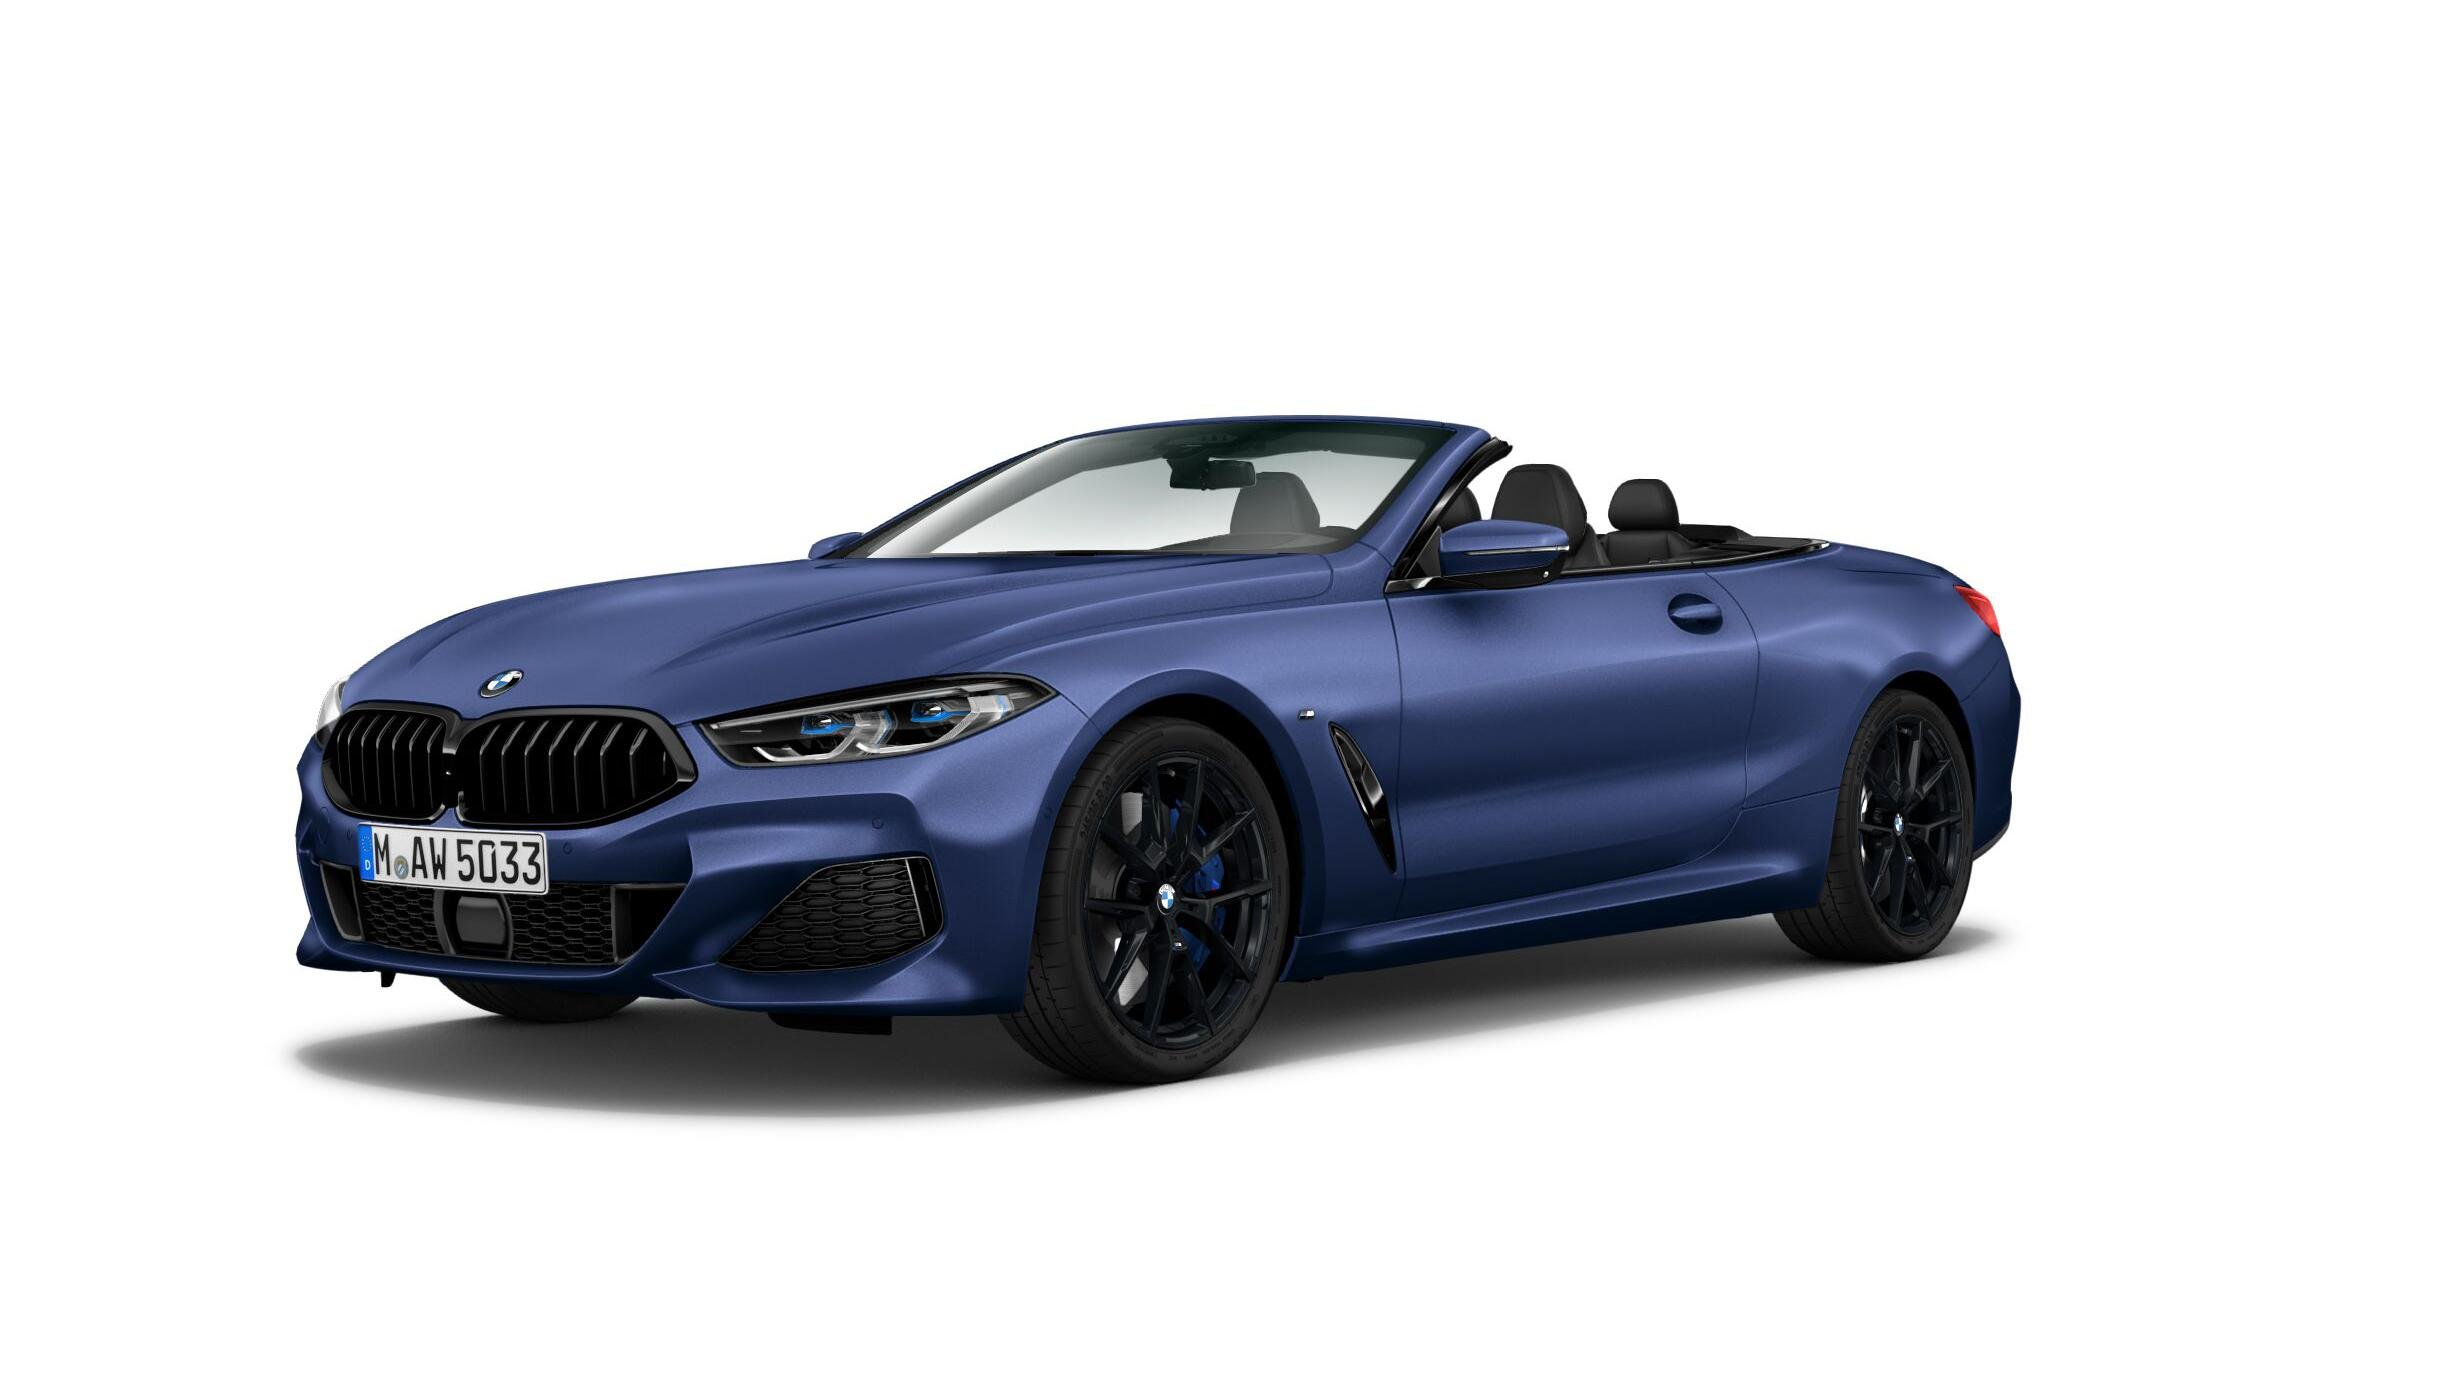 2022 BMW 8 Series Heritage Edition prices